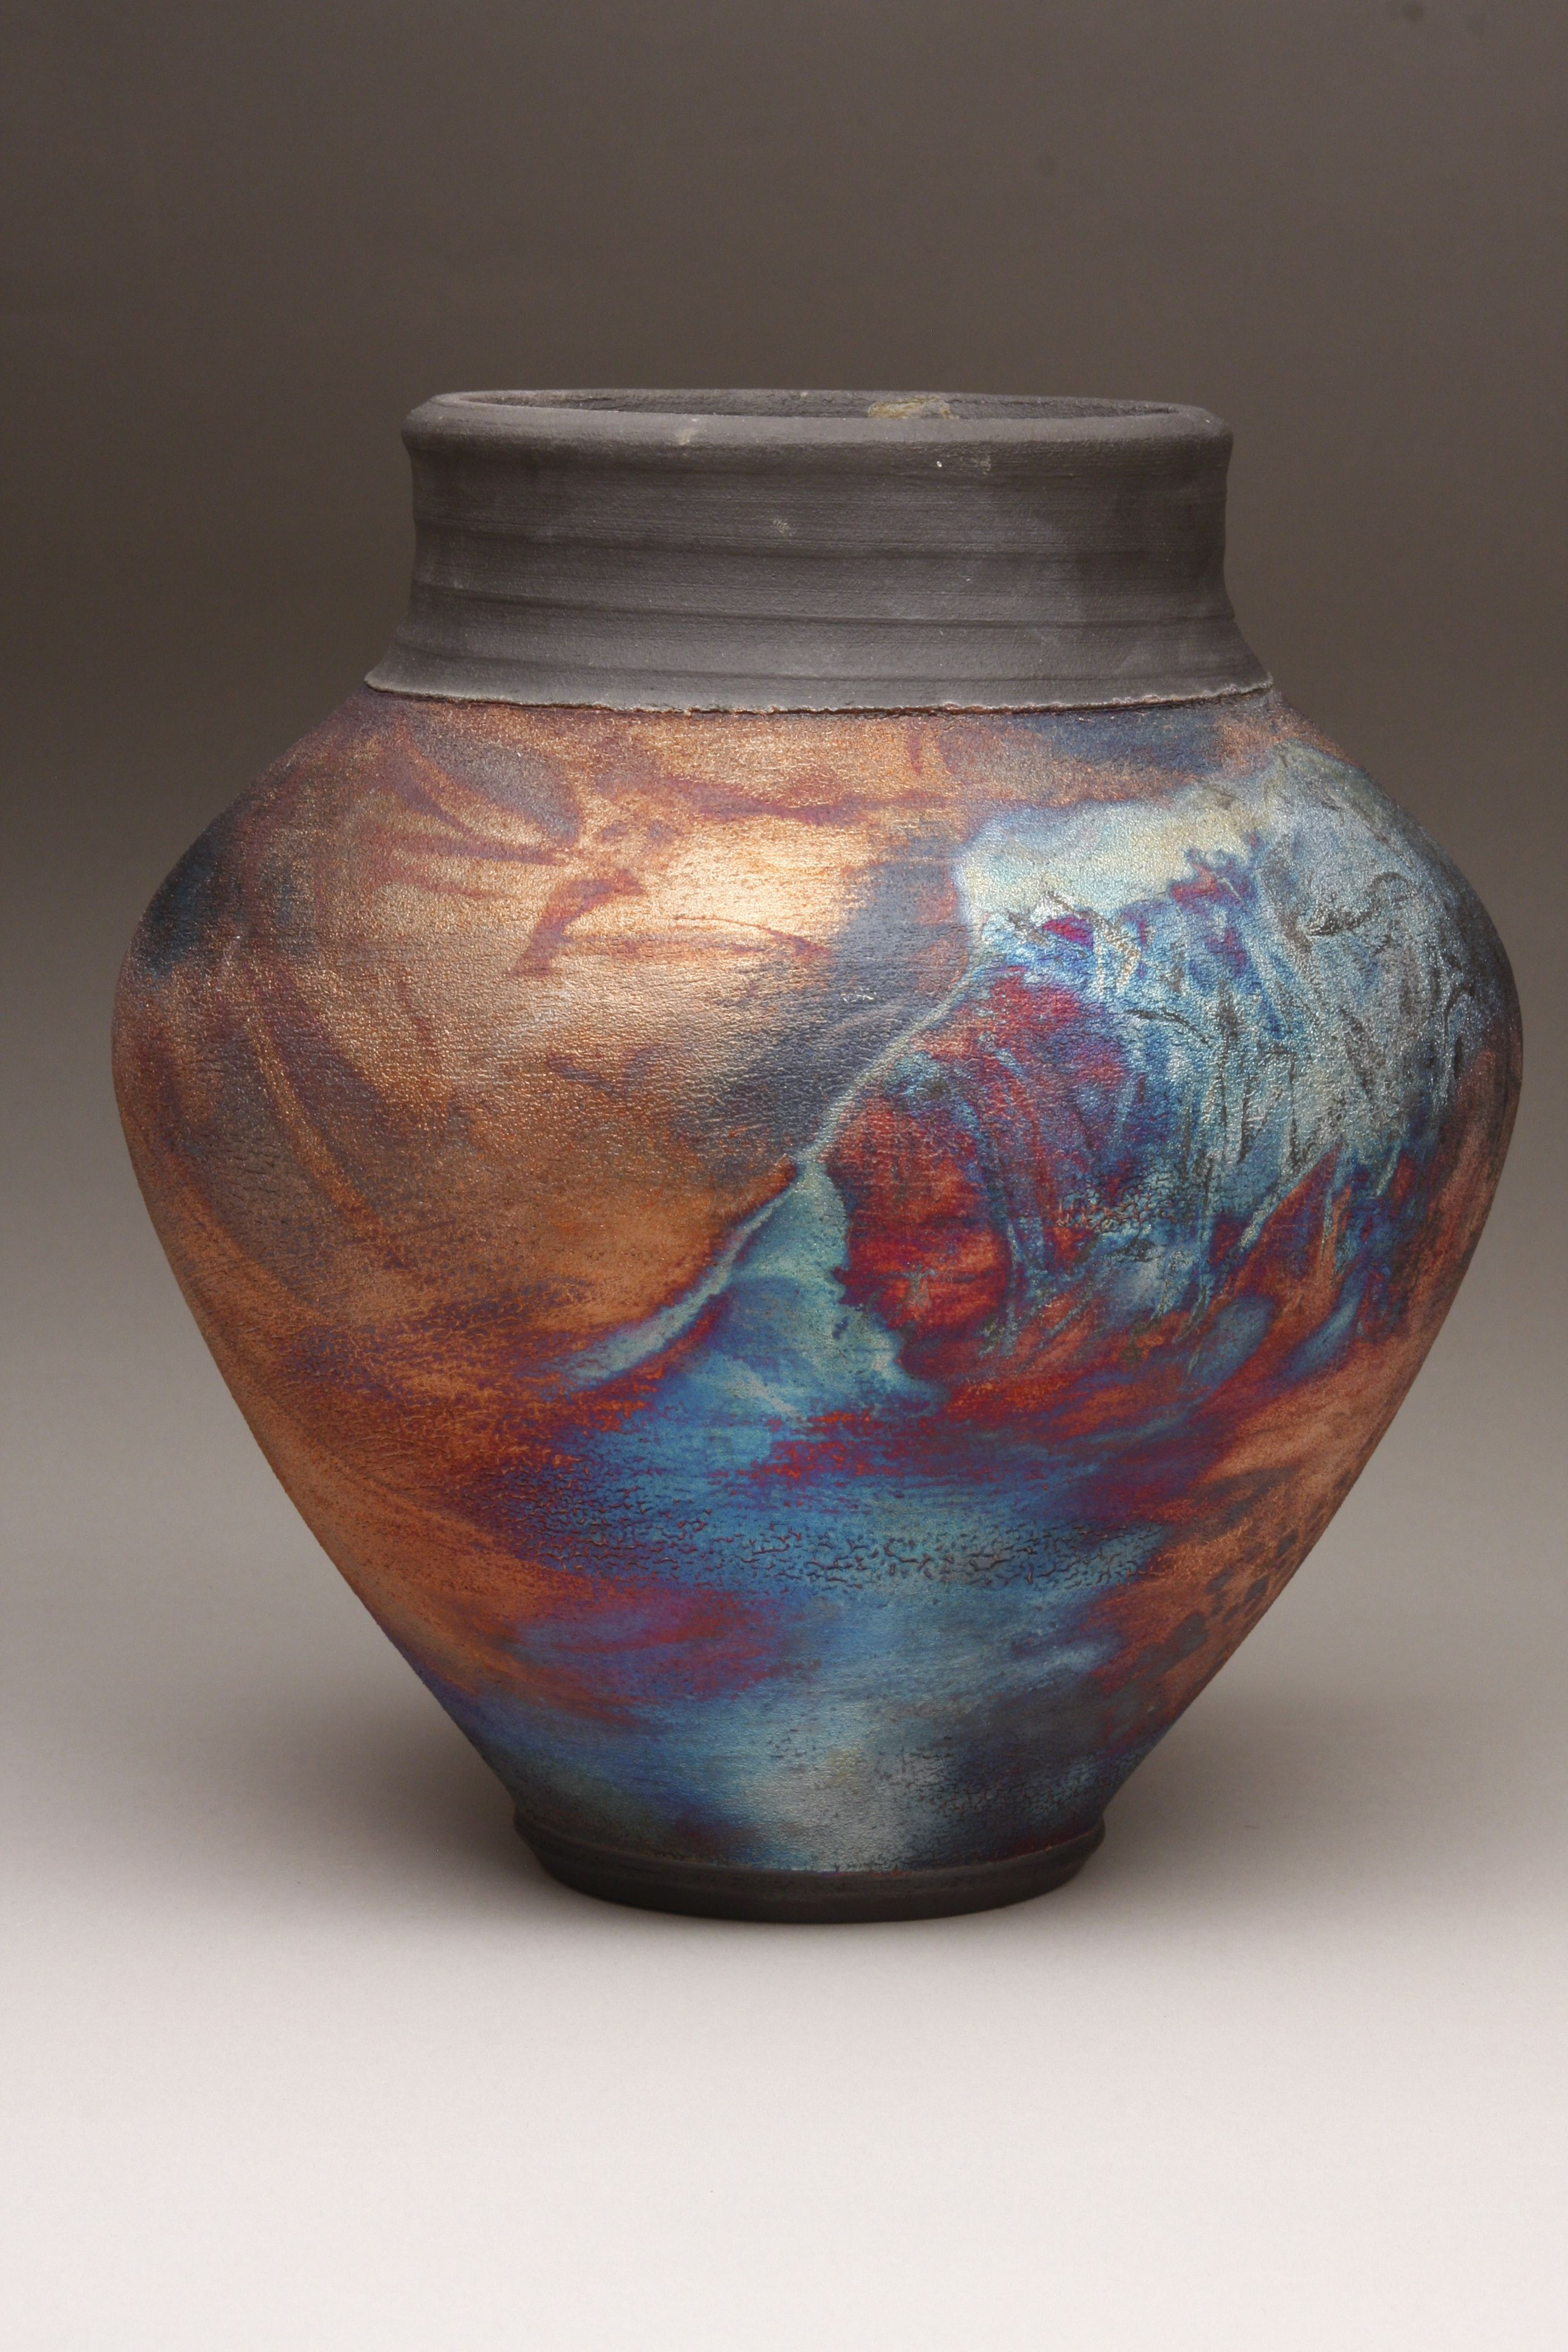 Keri Fisher keeps her contemporary pottery shapes round